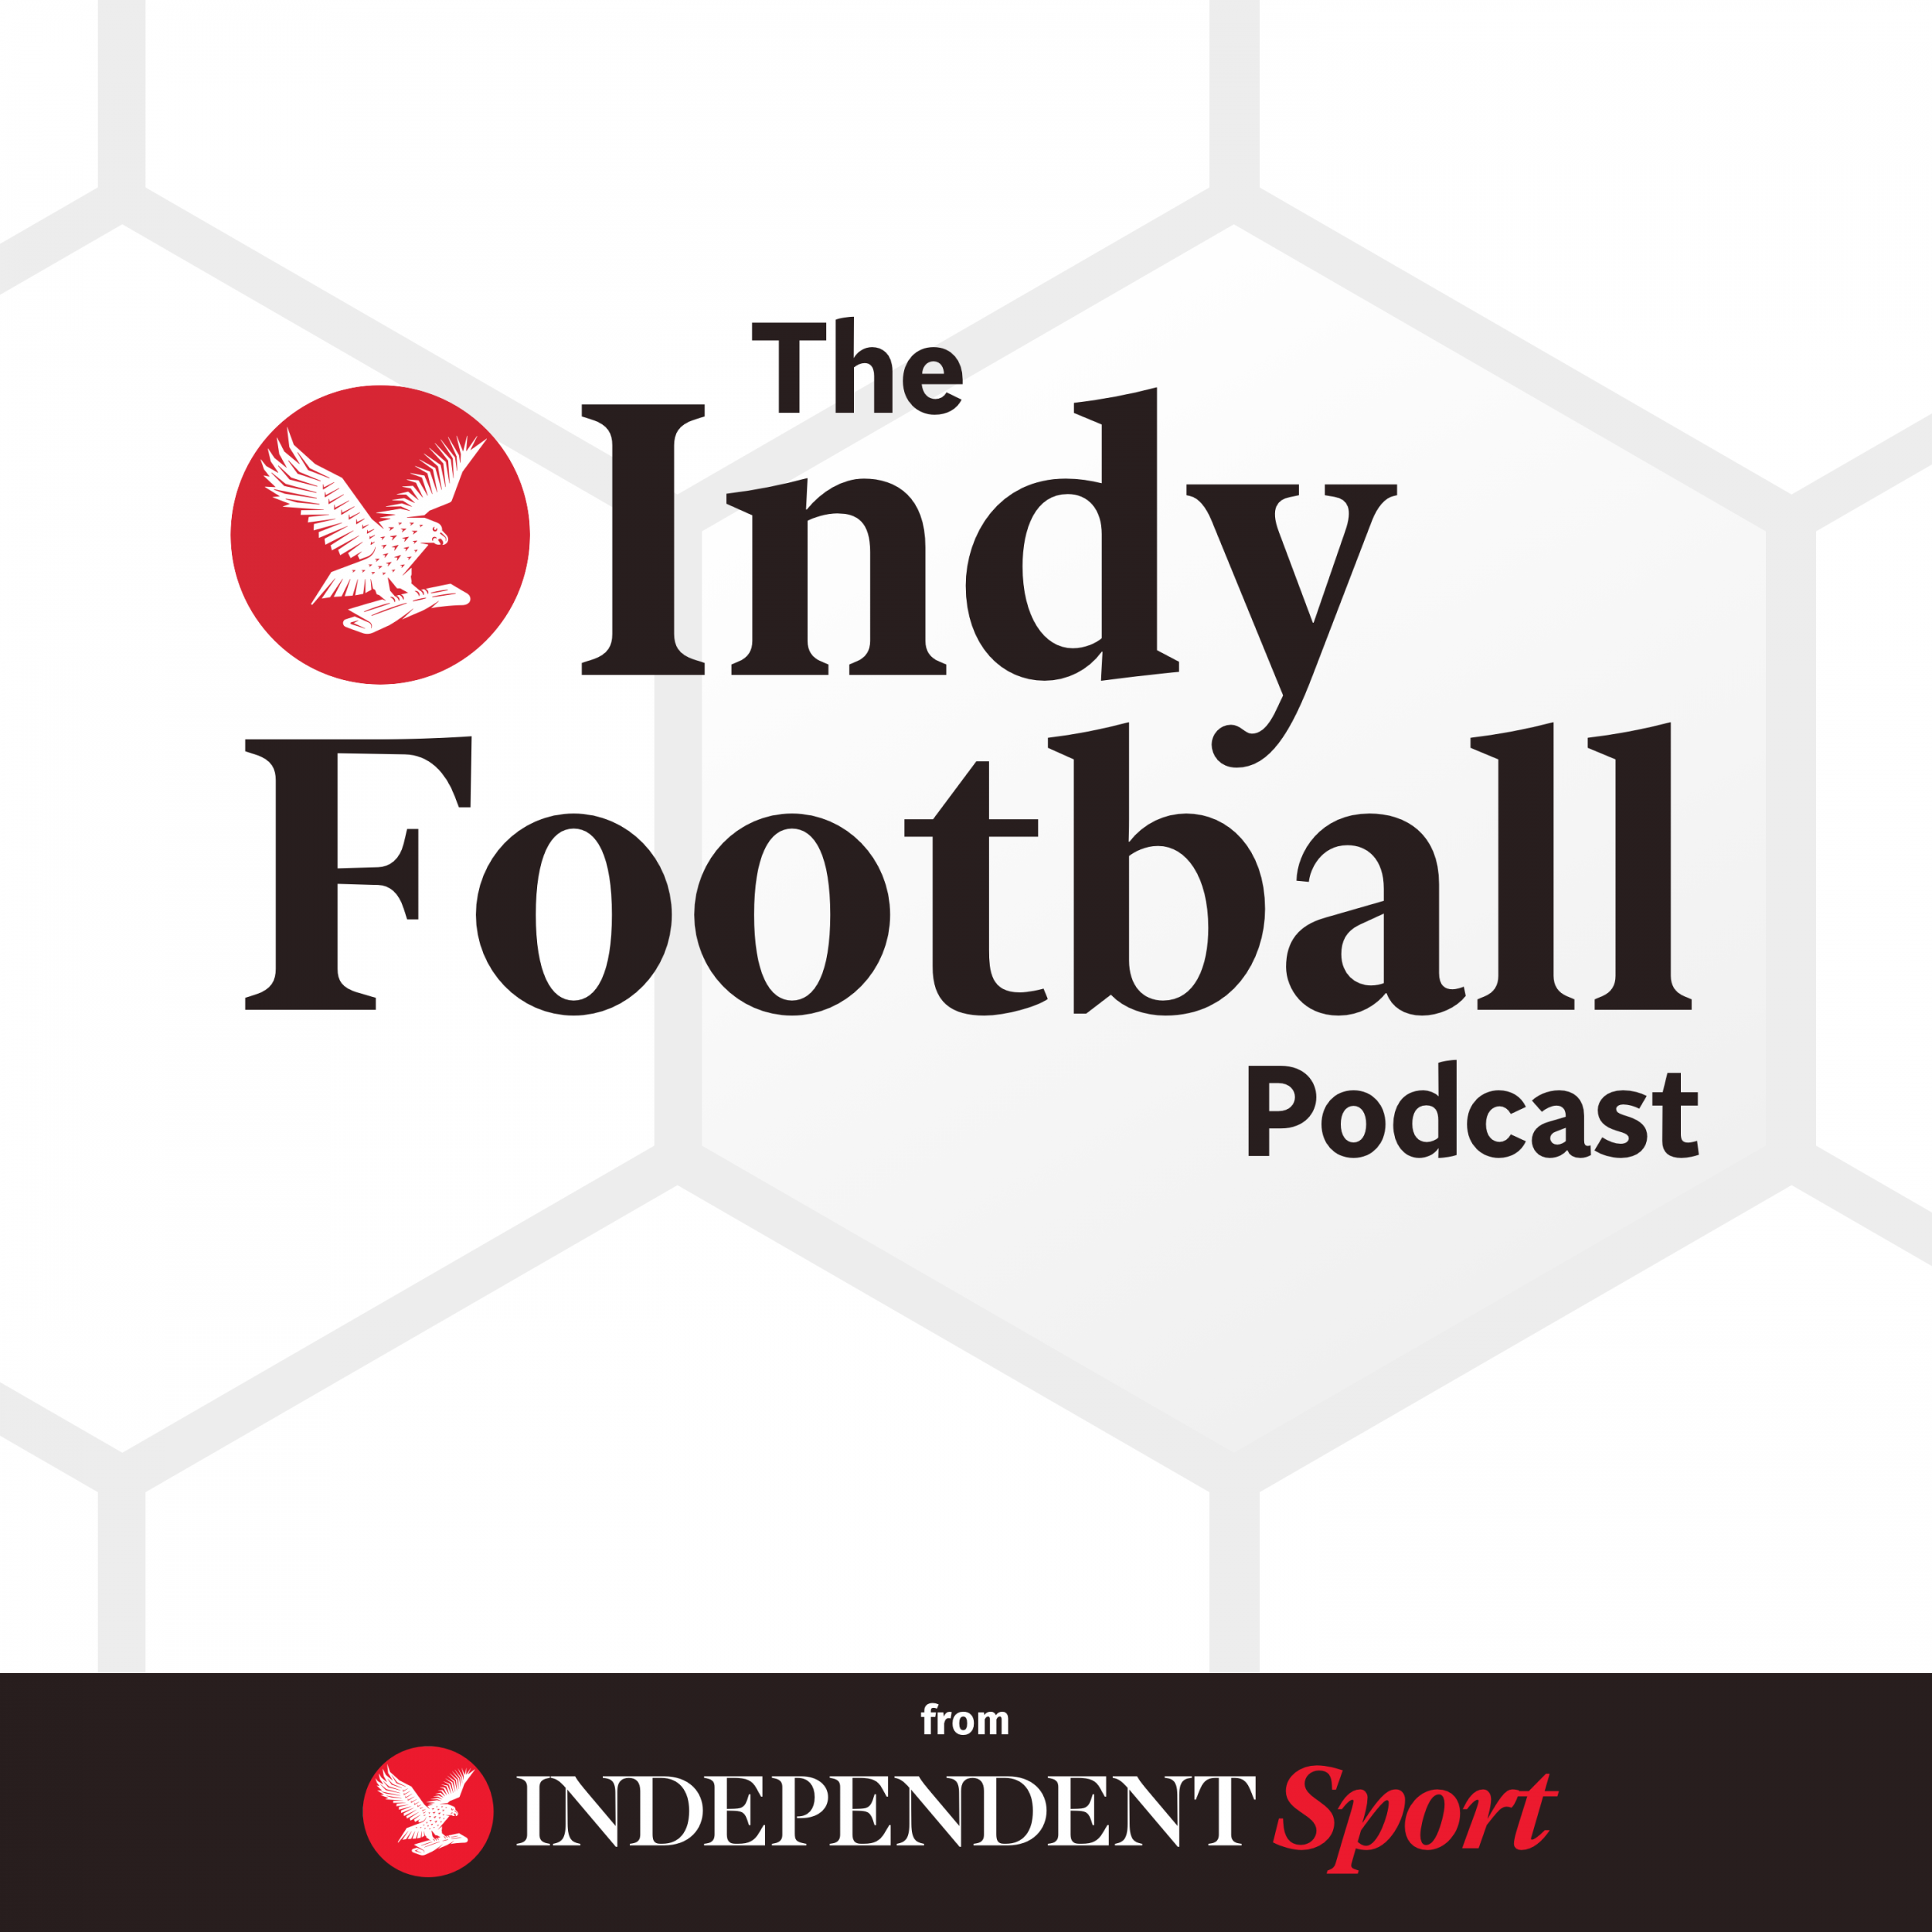 The Indy Football Podcast: What data analysis can teach us about Mohamed Salah, Tottenham and the World Cup